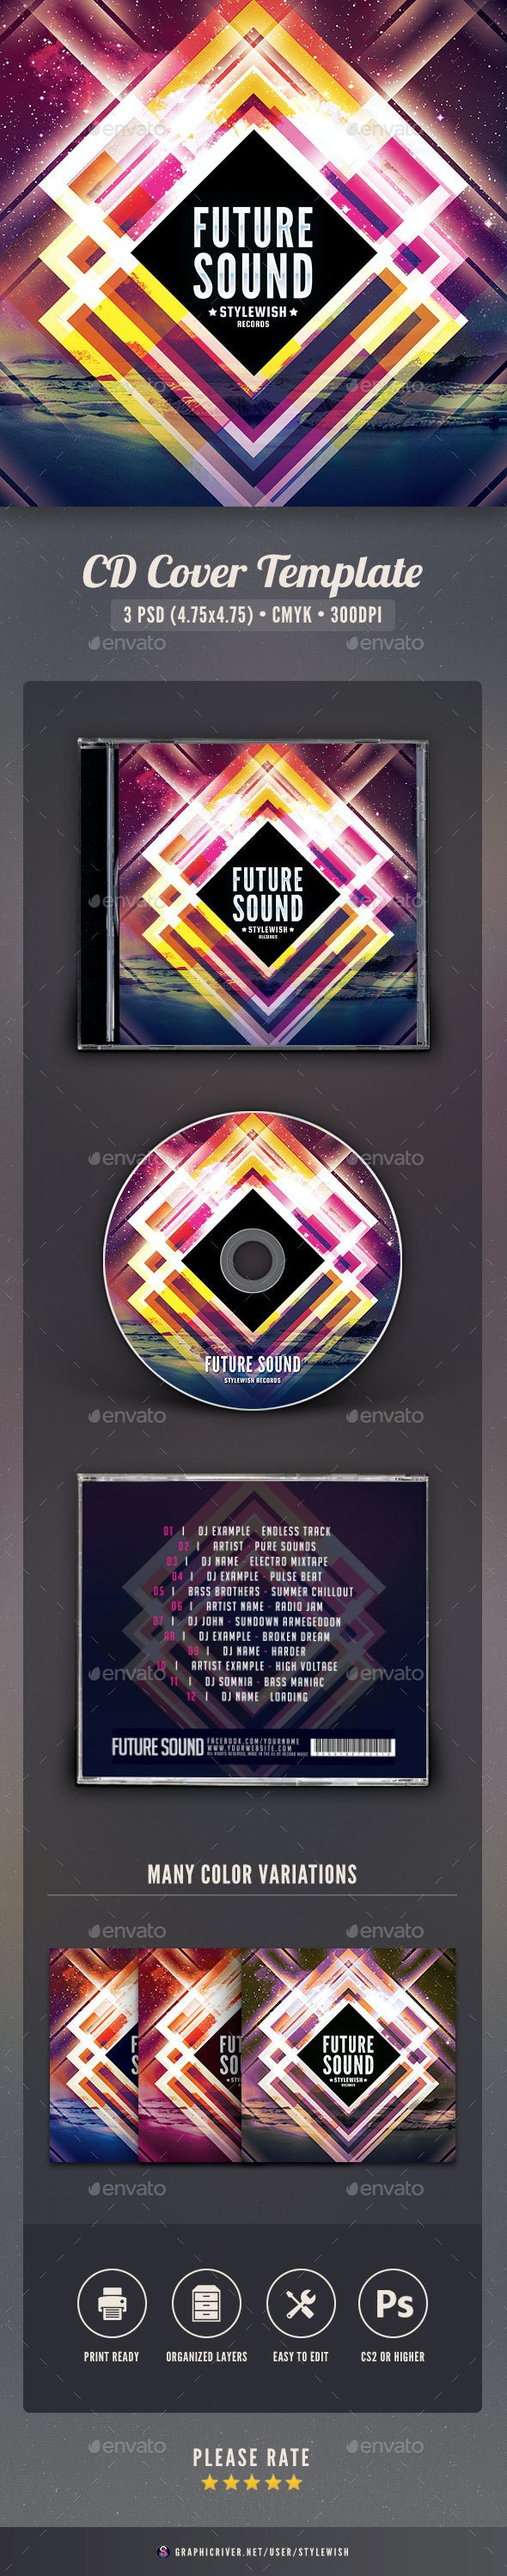 Future Sound CD Cover Artwork - CD & DVD Artwork Print Templates